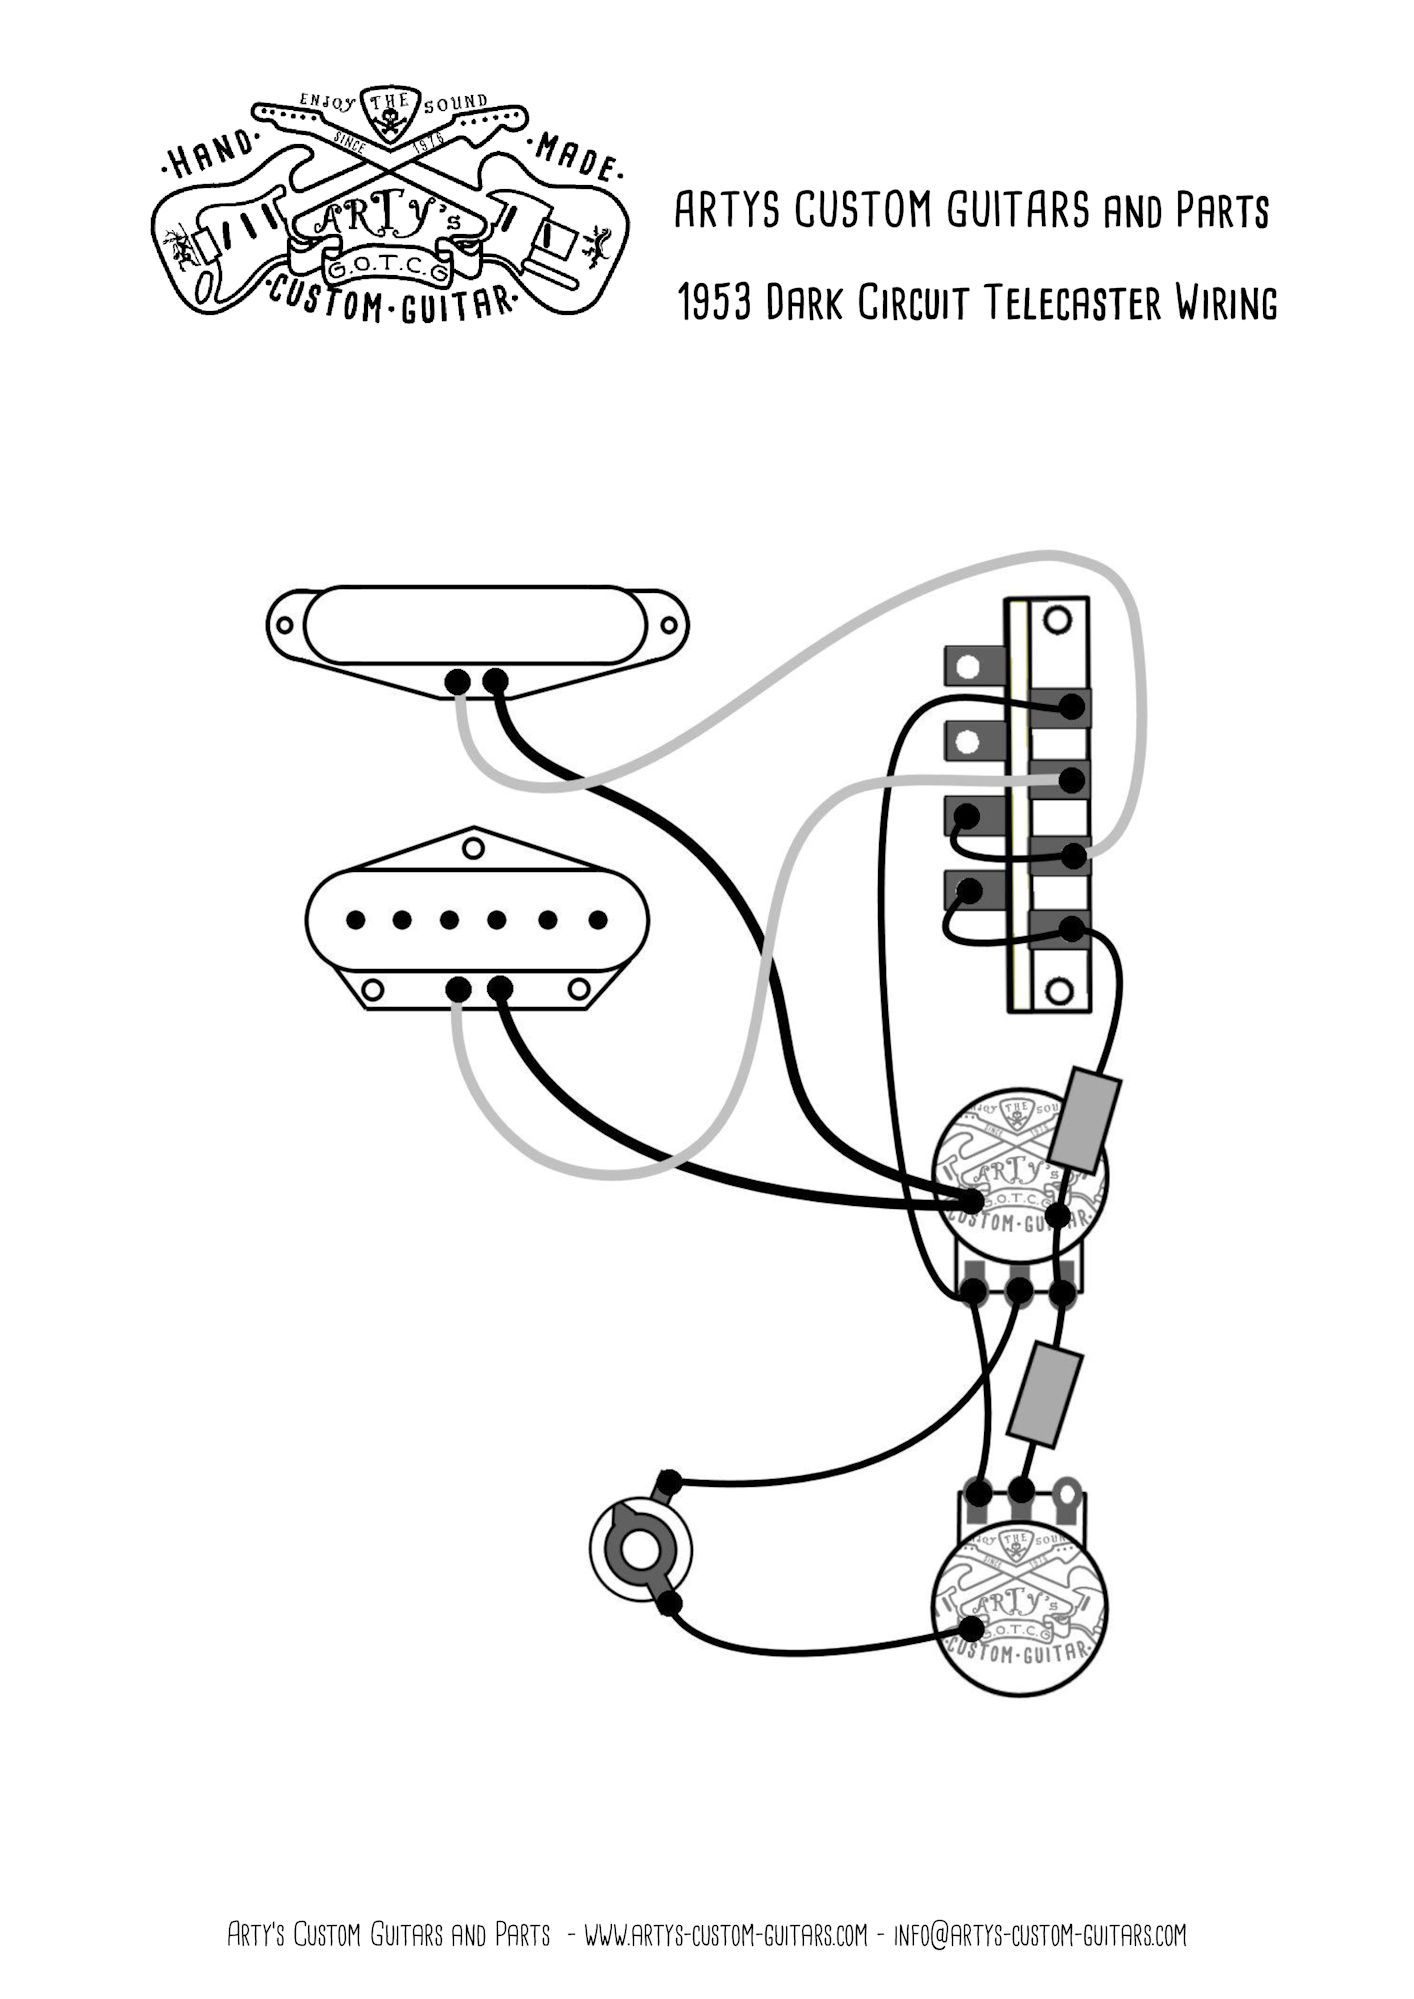 Custom Telecaster Wiring Diagram List Of Schematic Circuit Fender Squier Arty S Guitars Dark 1953 Control Rh Pinterest Com